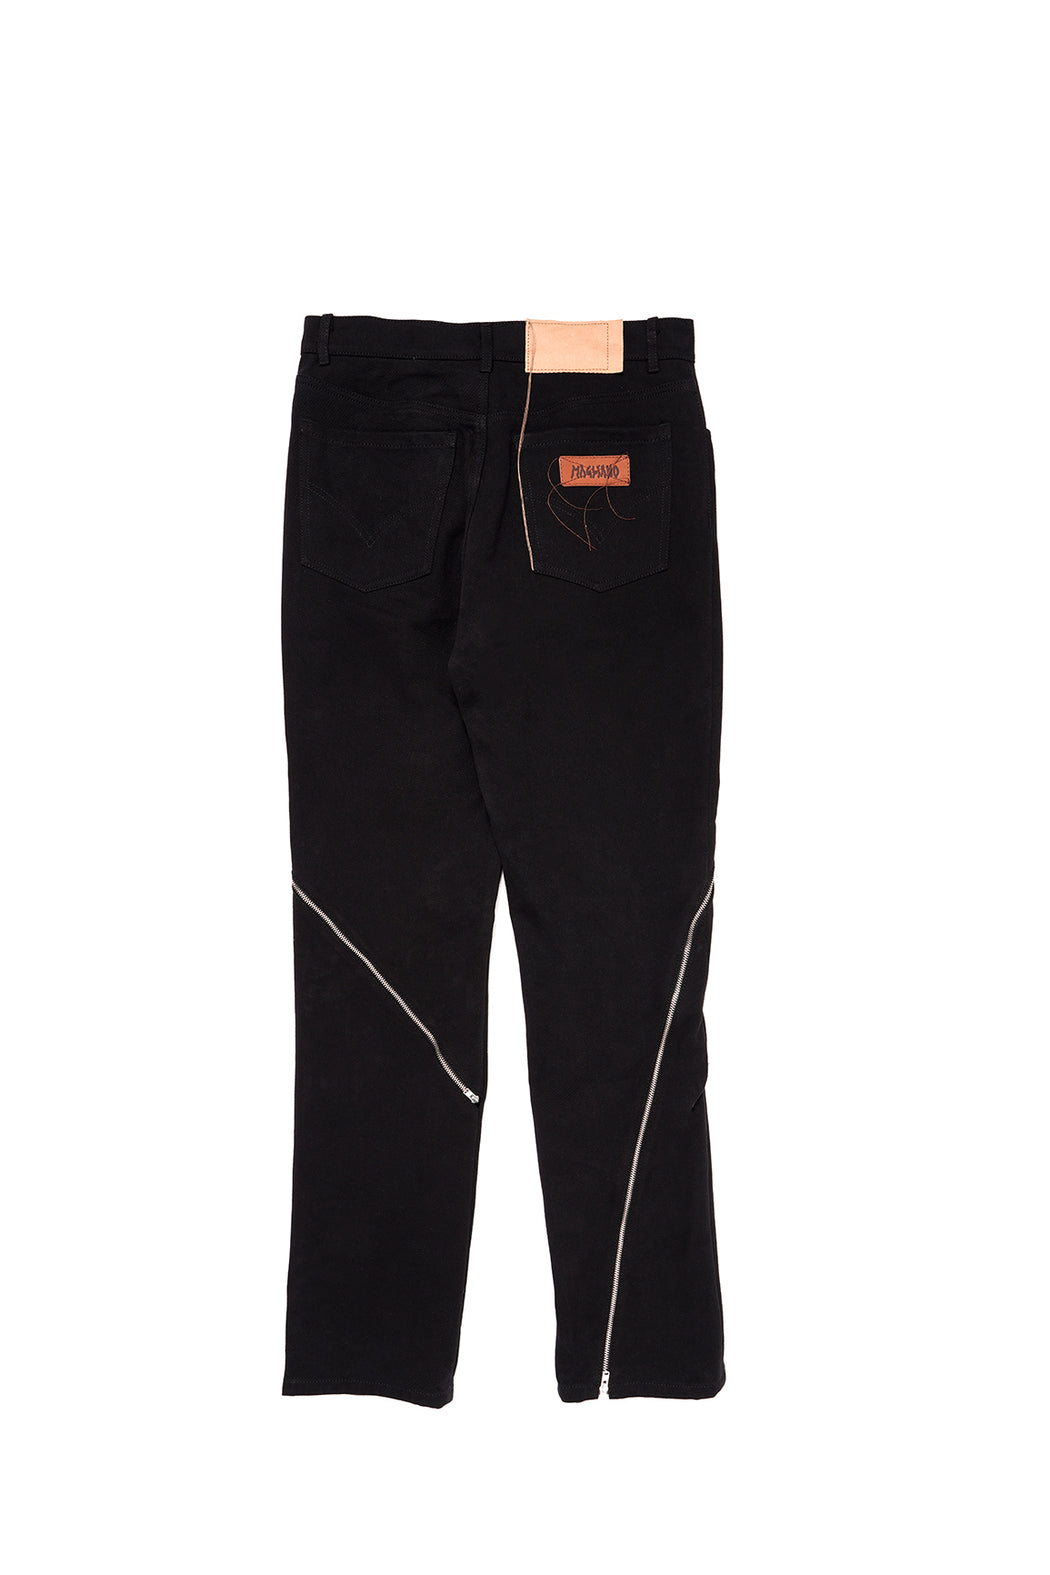 Zipped Pants - Black